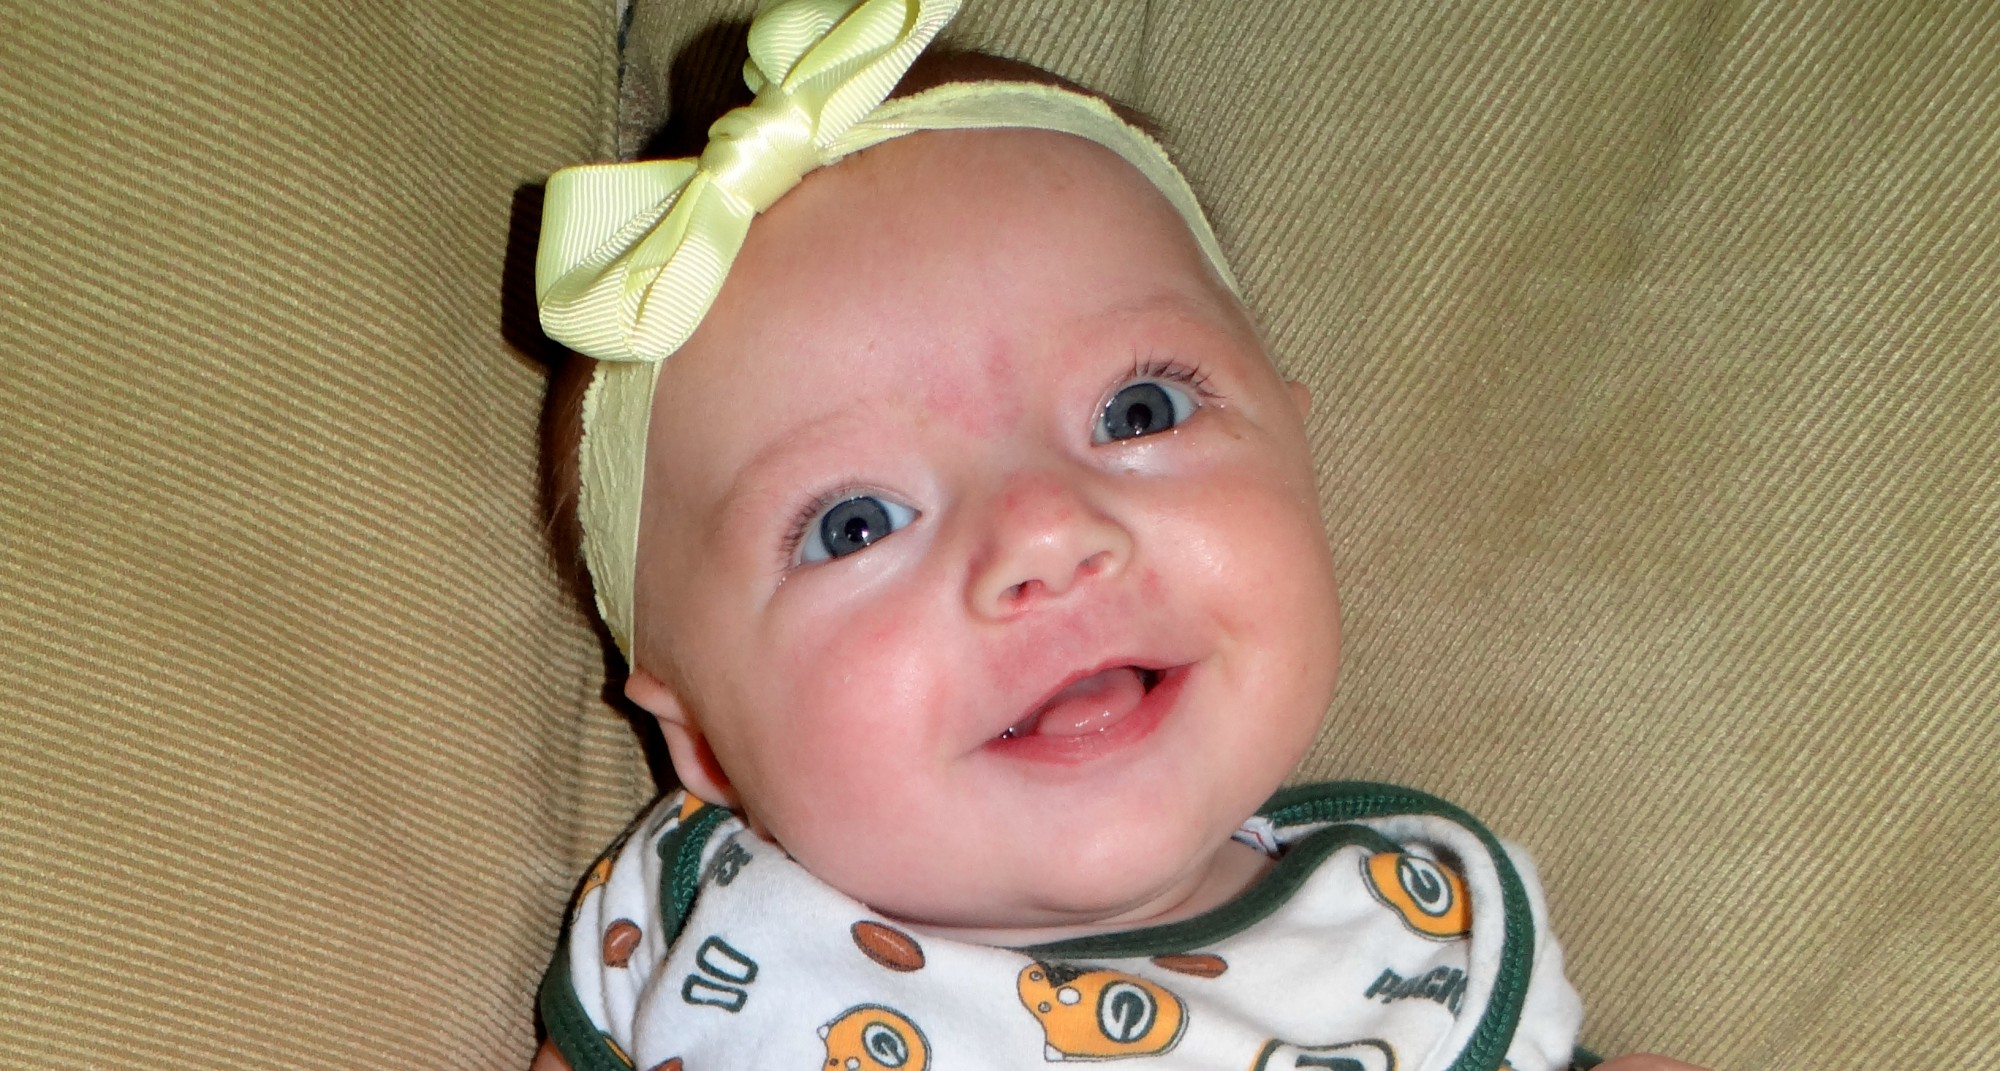 Just fixing my melon the story of elizabeth and her torticollis plagiocephaly and doc band